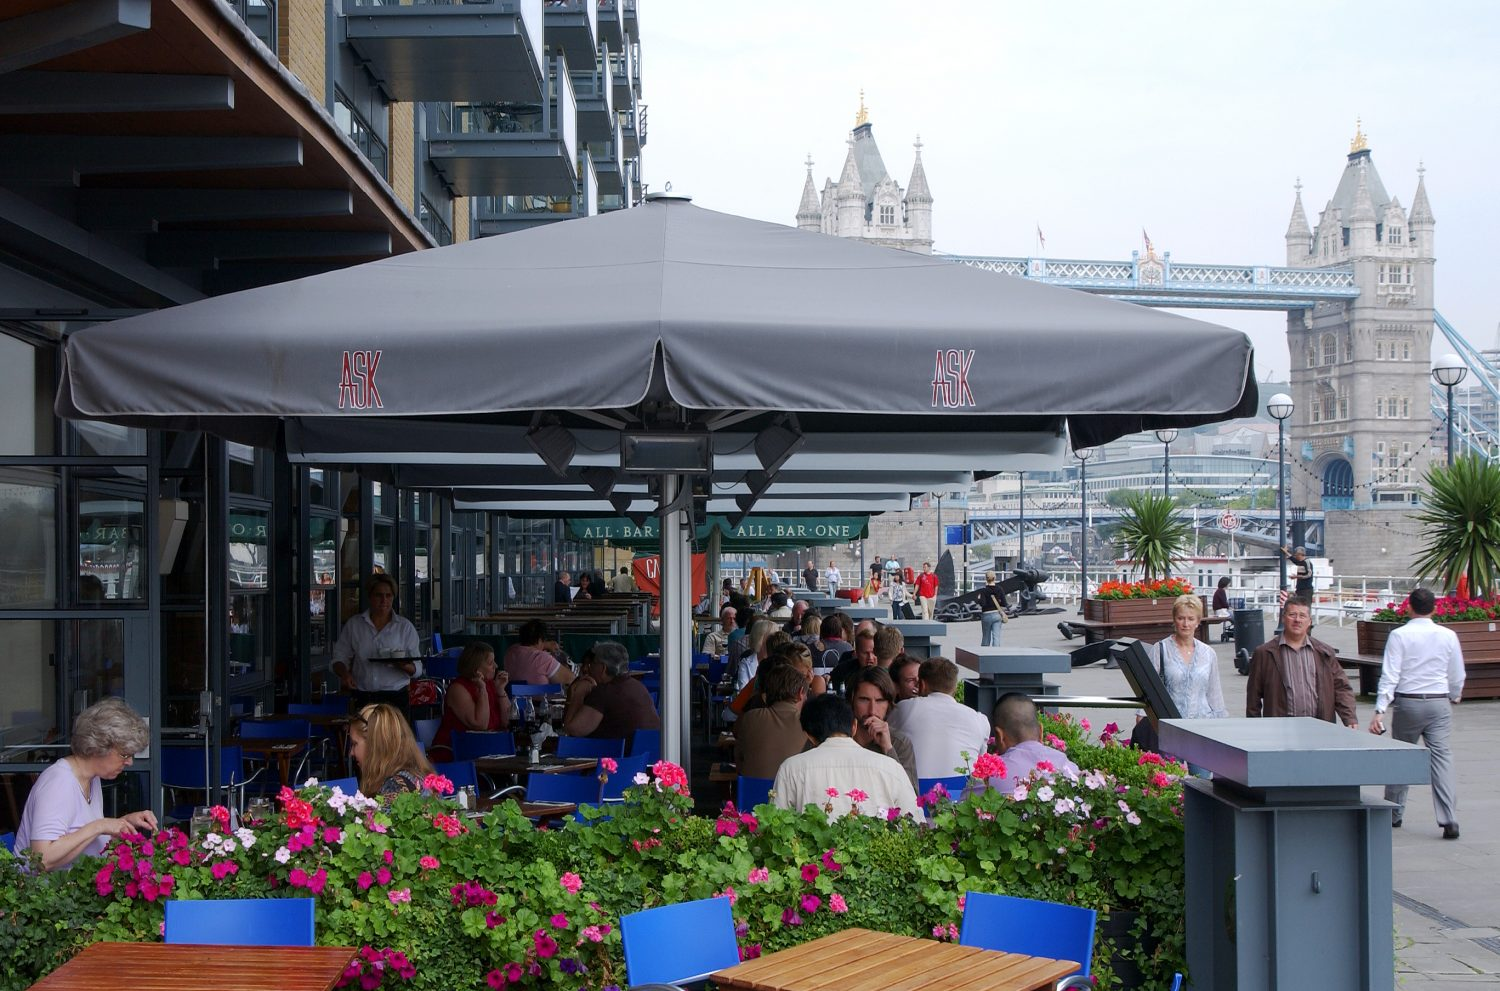 Butlers Wharf ASK Restaurant Giant Parasols